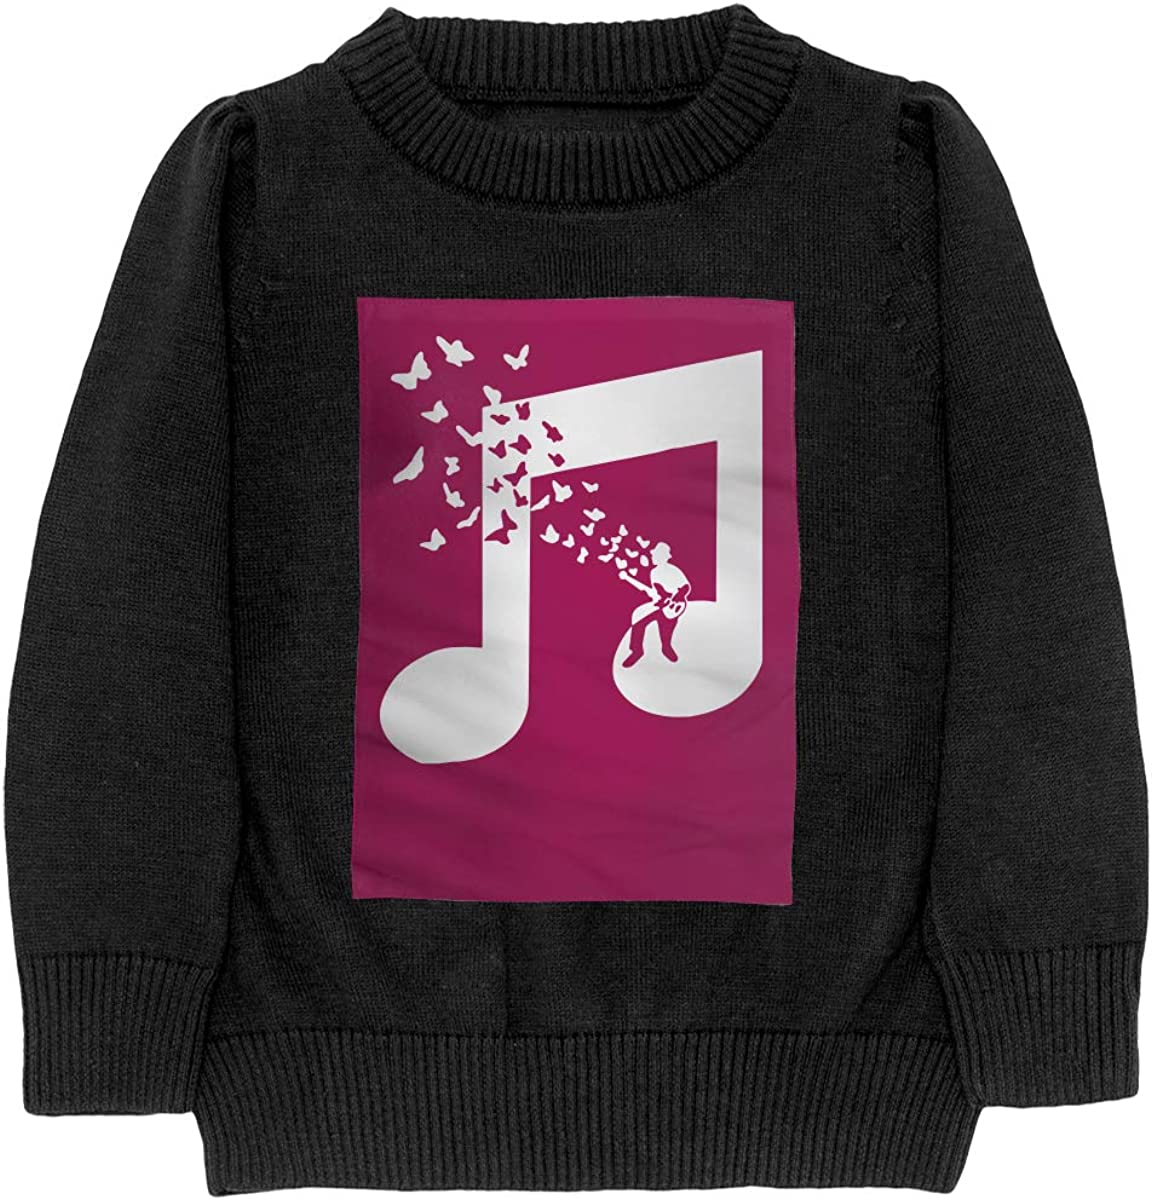 I Play Bass Guitar Music Note Butterflies Musician Cool Teenager Boys /& Girls Unisex Sweater Keep Warm